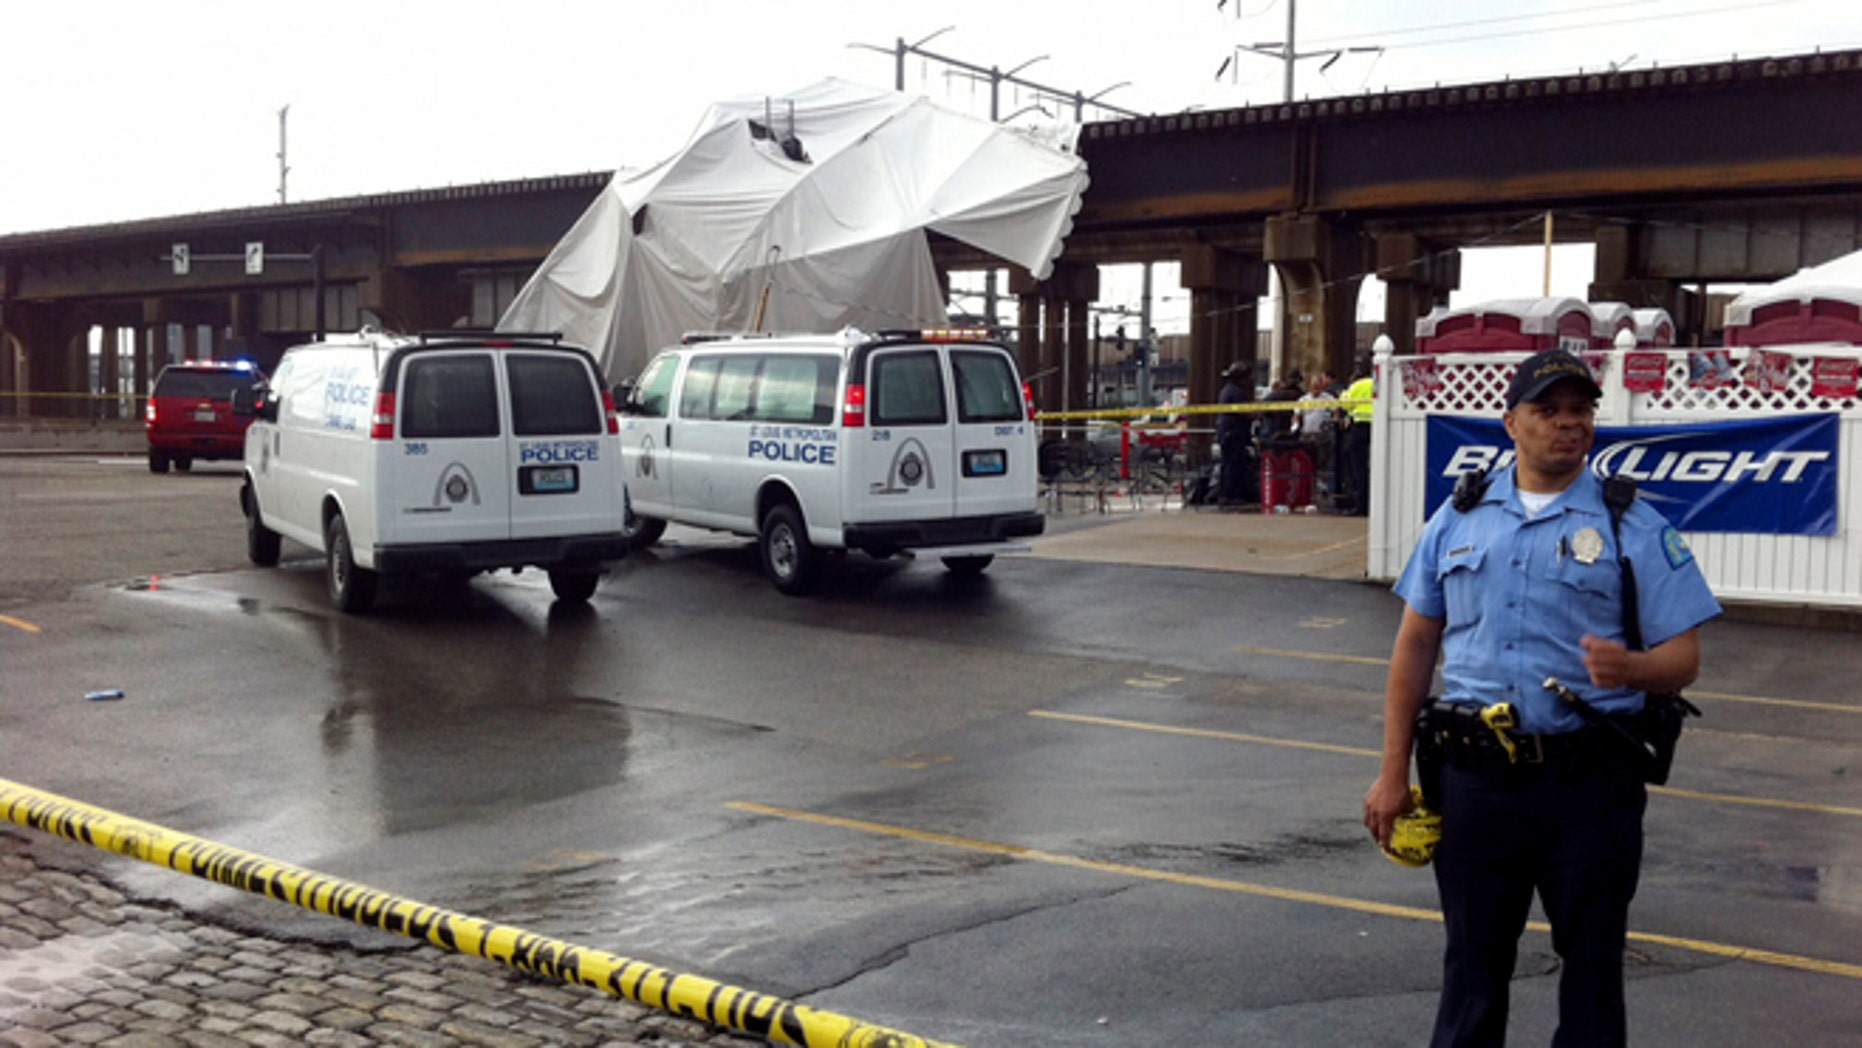 April 28, 2012: Officials respond to the scene where a tent blew over after high winds crossed the area in St. Louis.